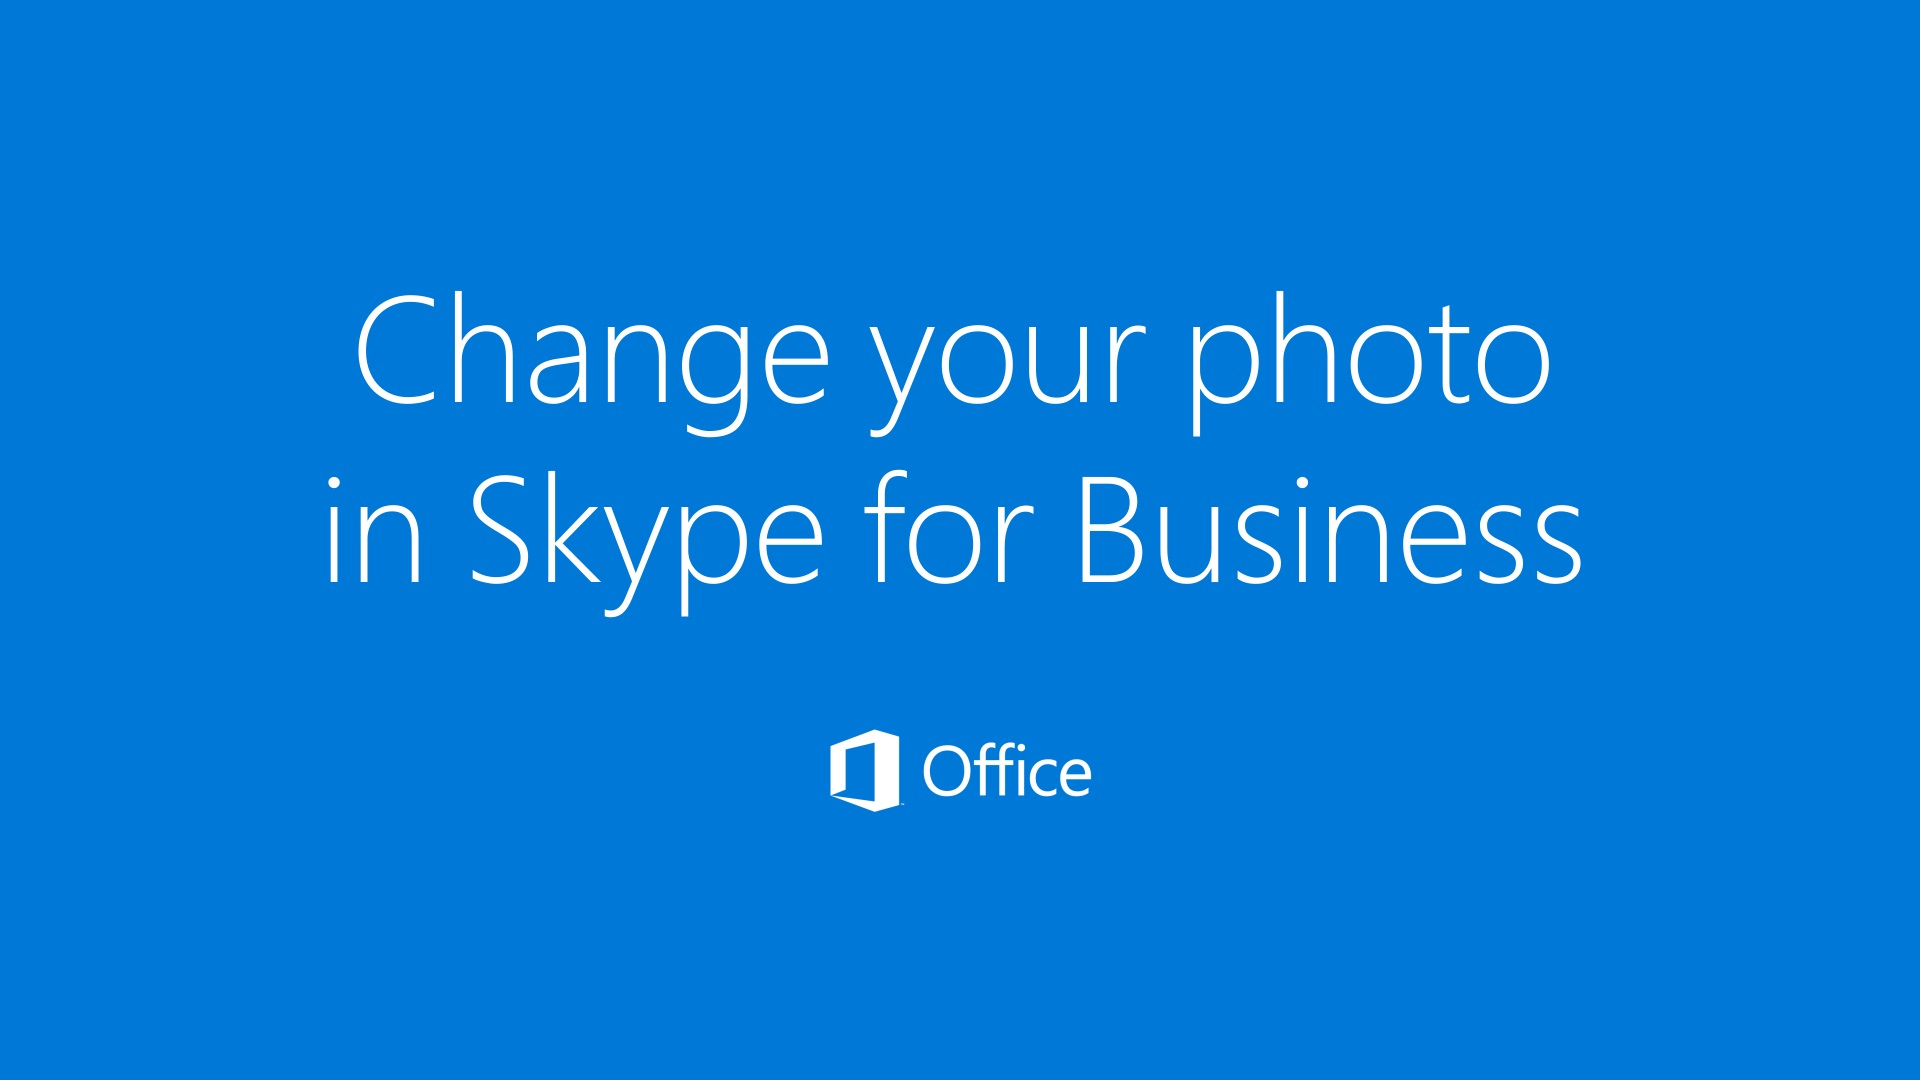 Add or change your photo in Skype for Business